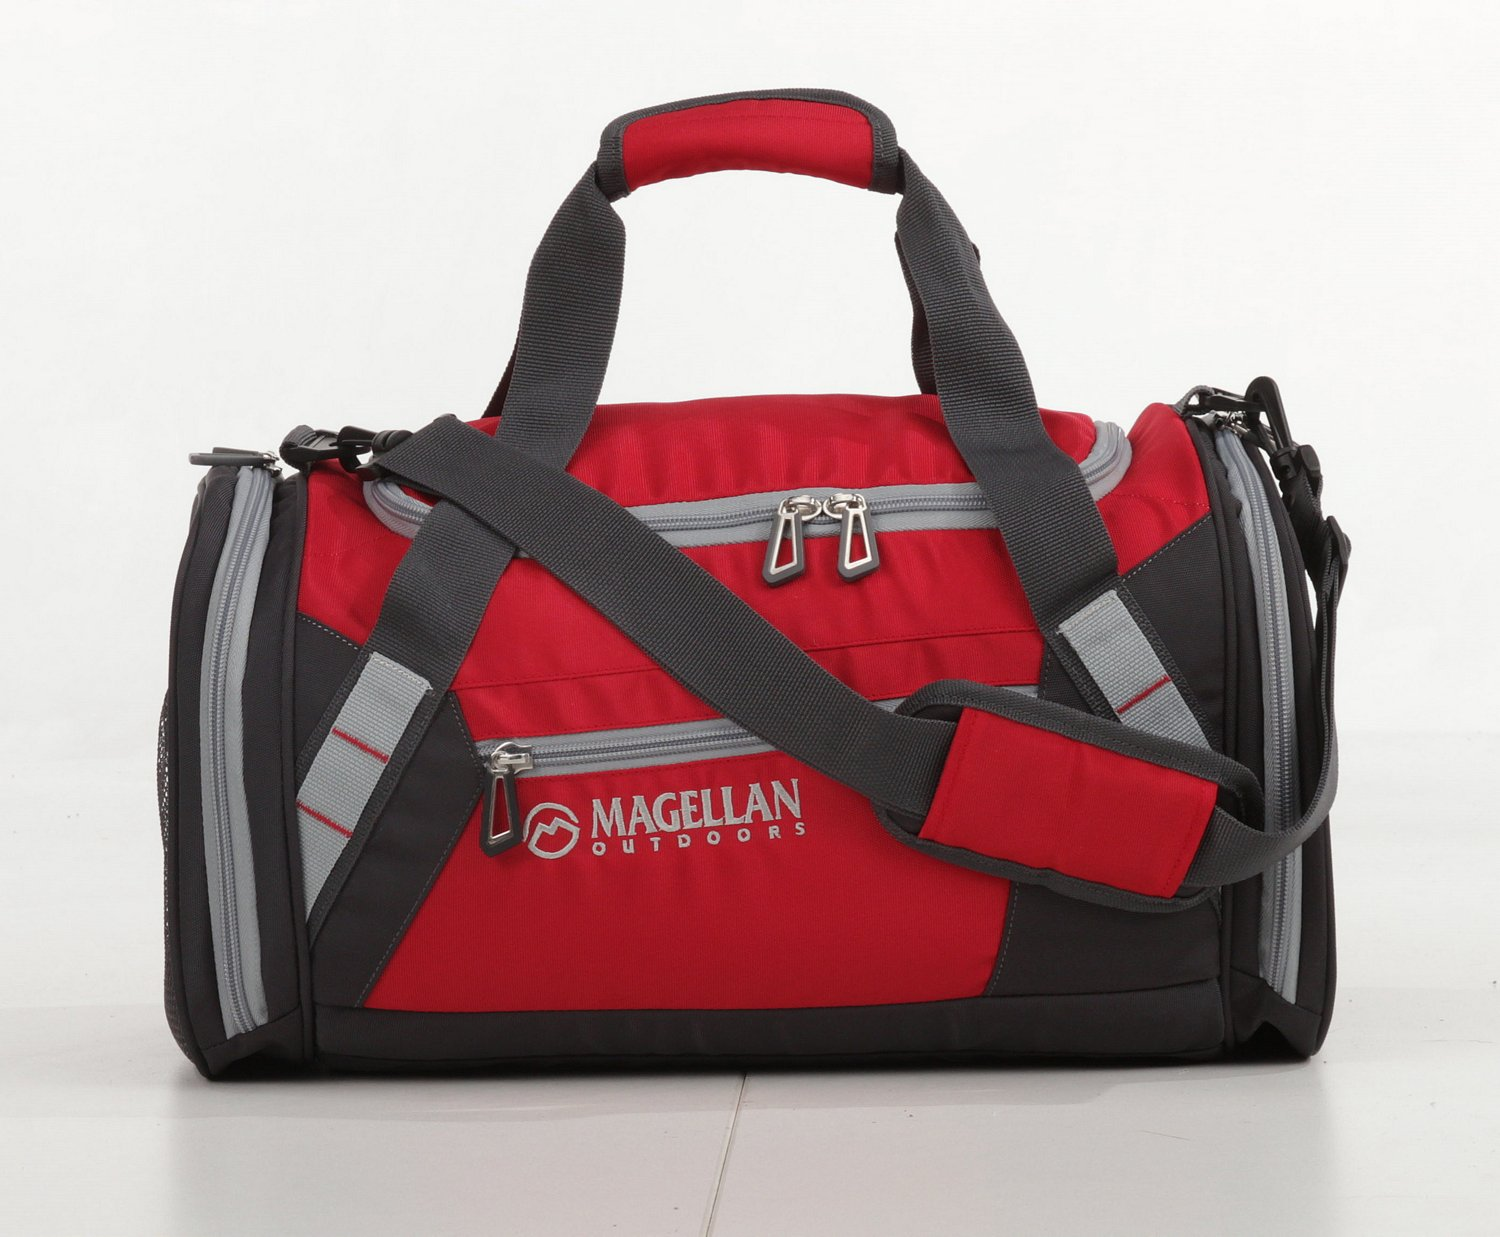 d2f0a933db Display product reviews for Magellan Outdoors 18 in Duffel Bag